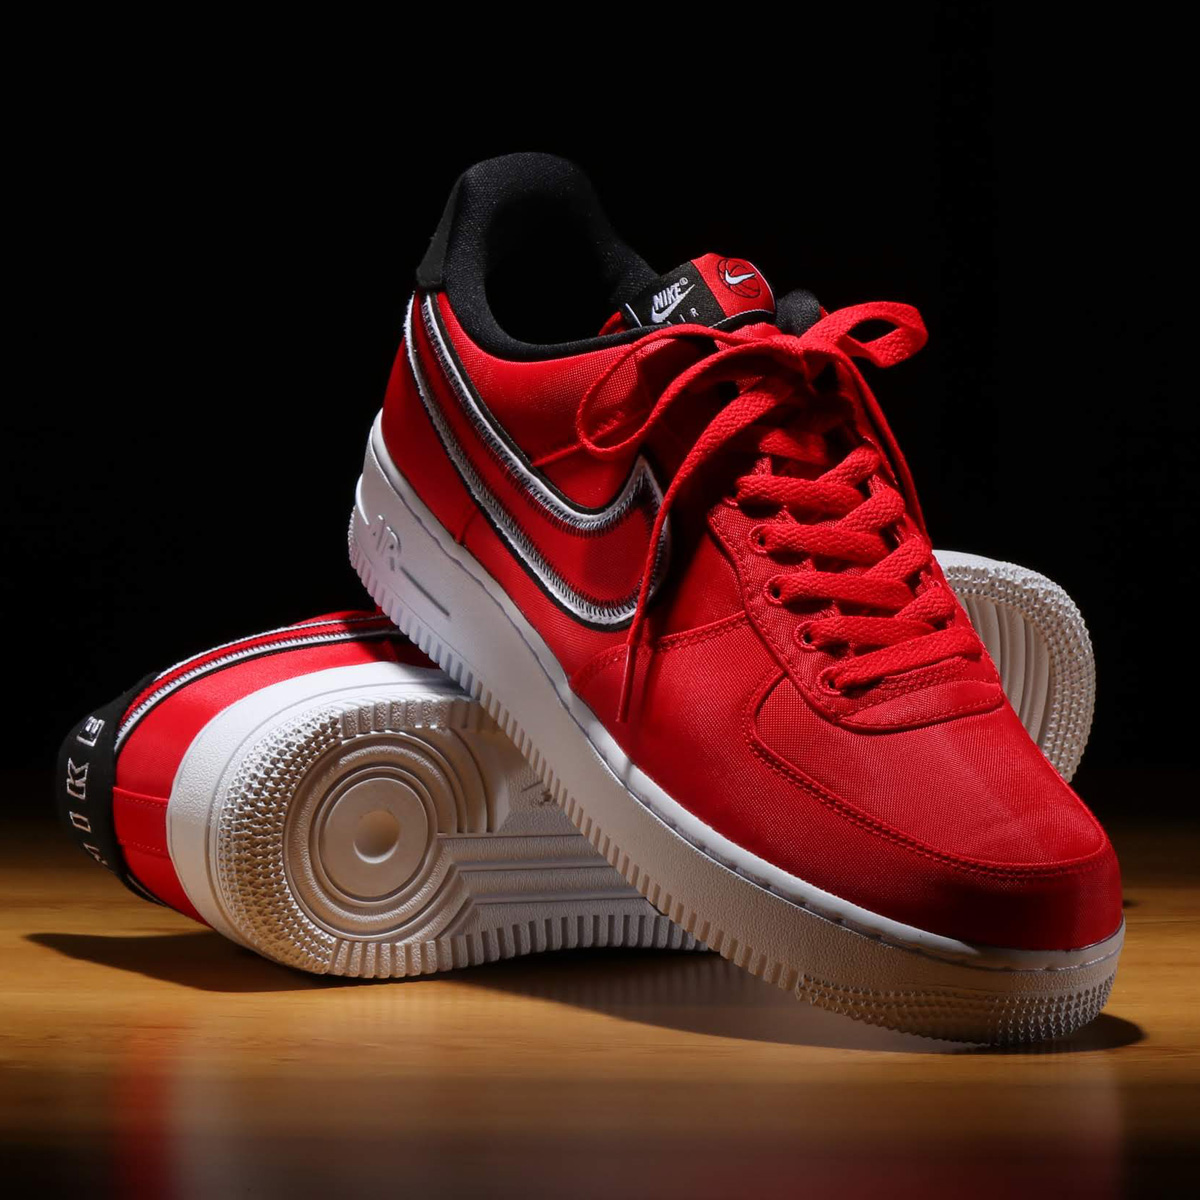 NIKE AIR FORCE 1 '07 LV8 1(ナイキ エア フォース 1 '07 LV8 1)UNIVERSITY RED/BLACK-WHITE【メンズ スニーカー】20SP-I